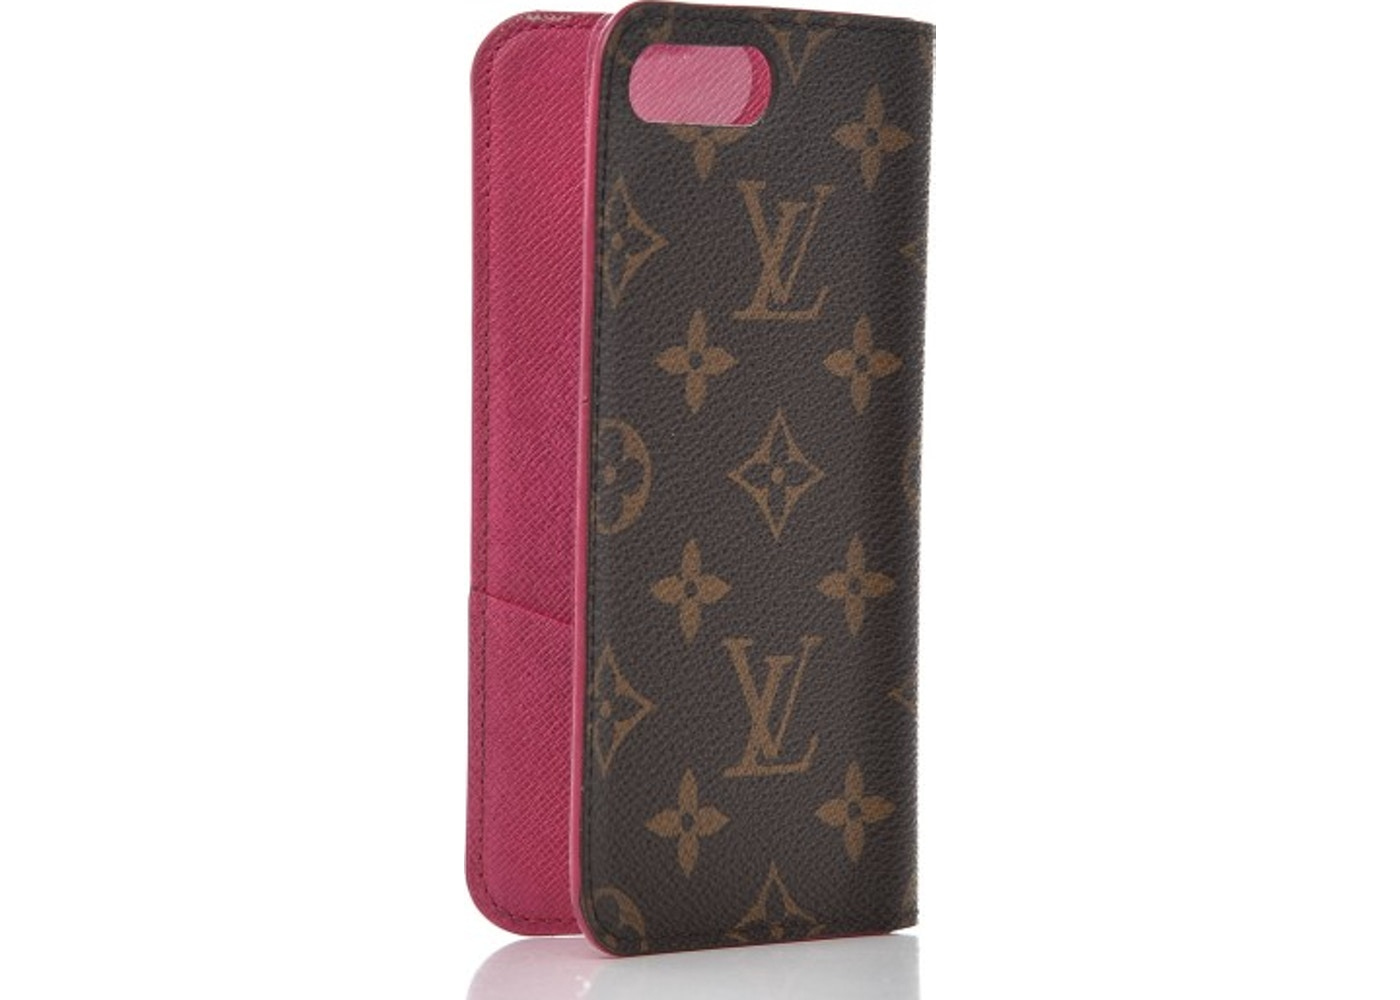 finest selection 57652 a017a Louis Vuitton Folio Case iPhone 7/8 Plus Monogram Rose Pink